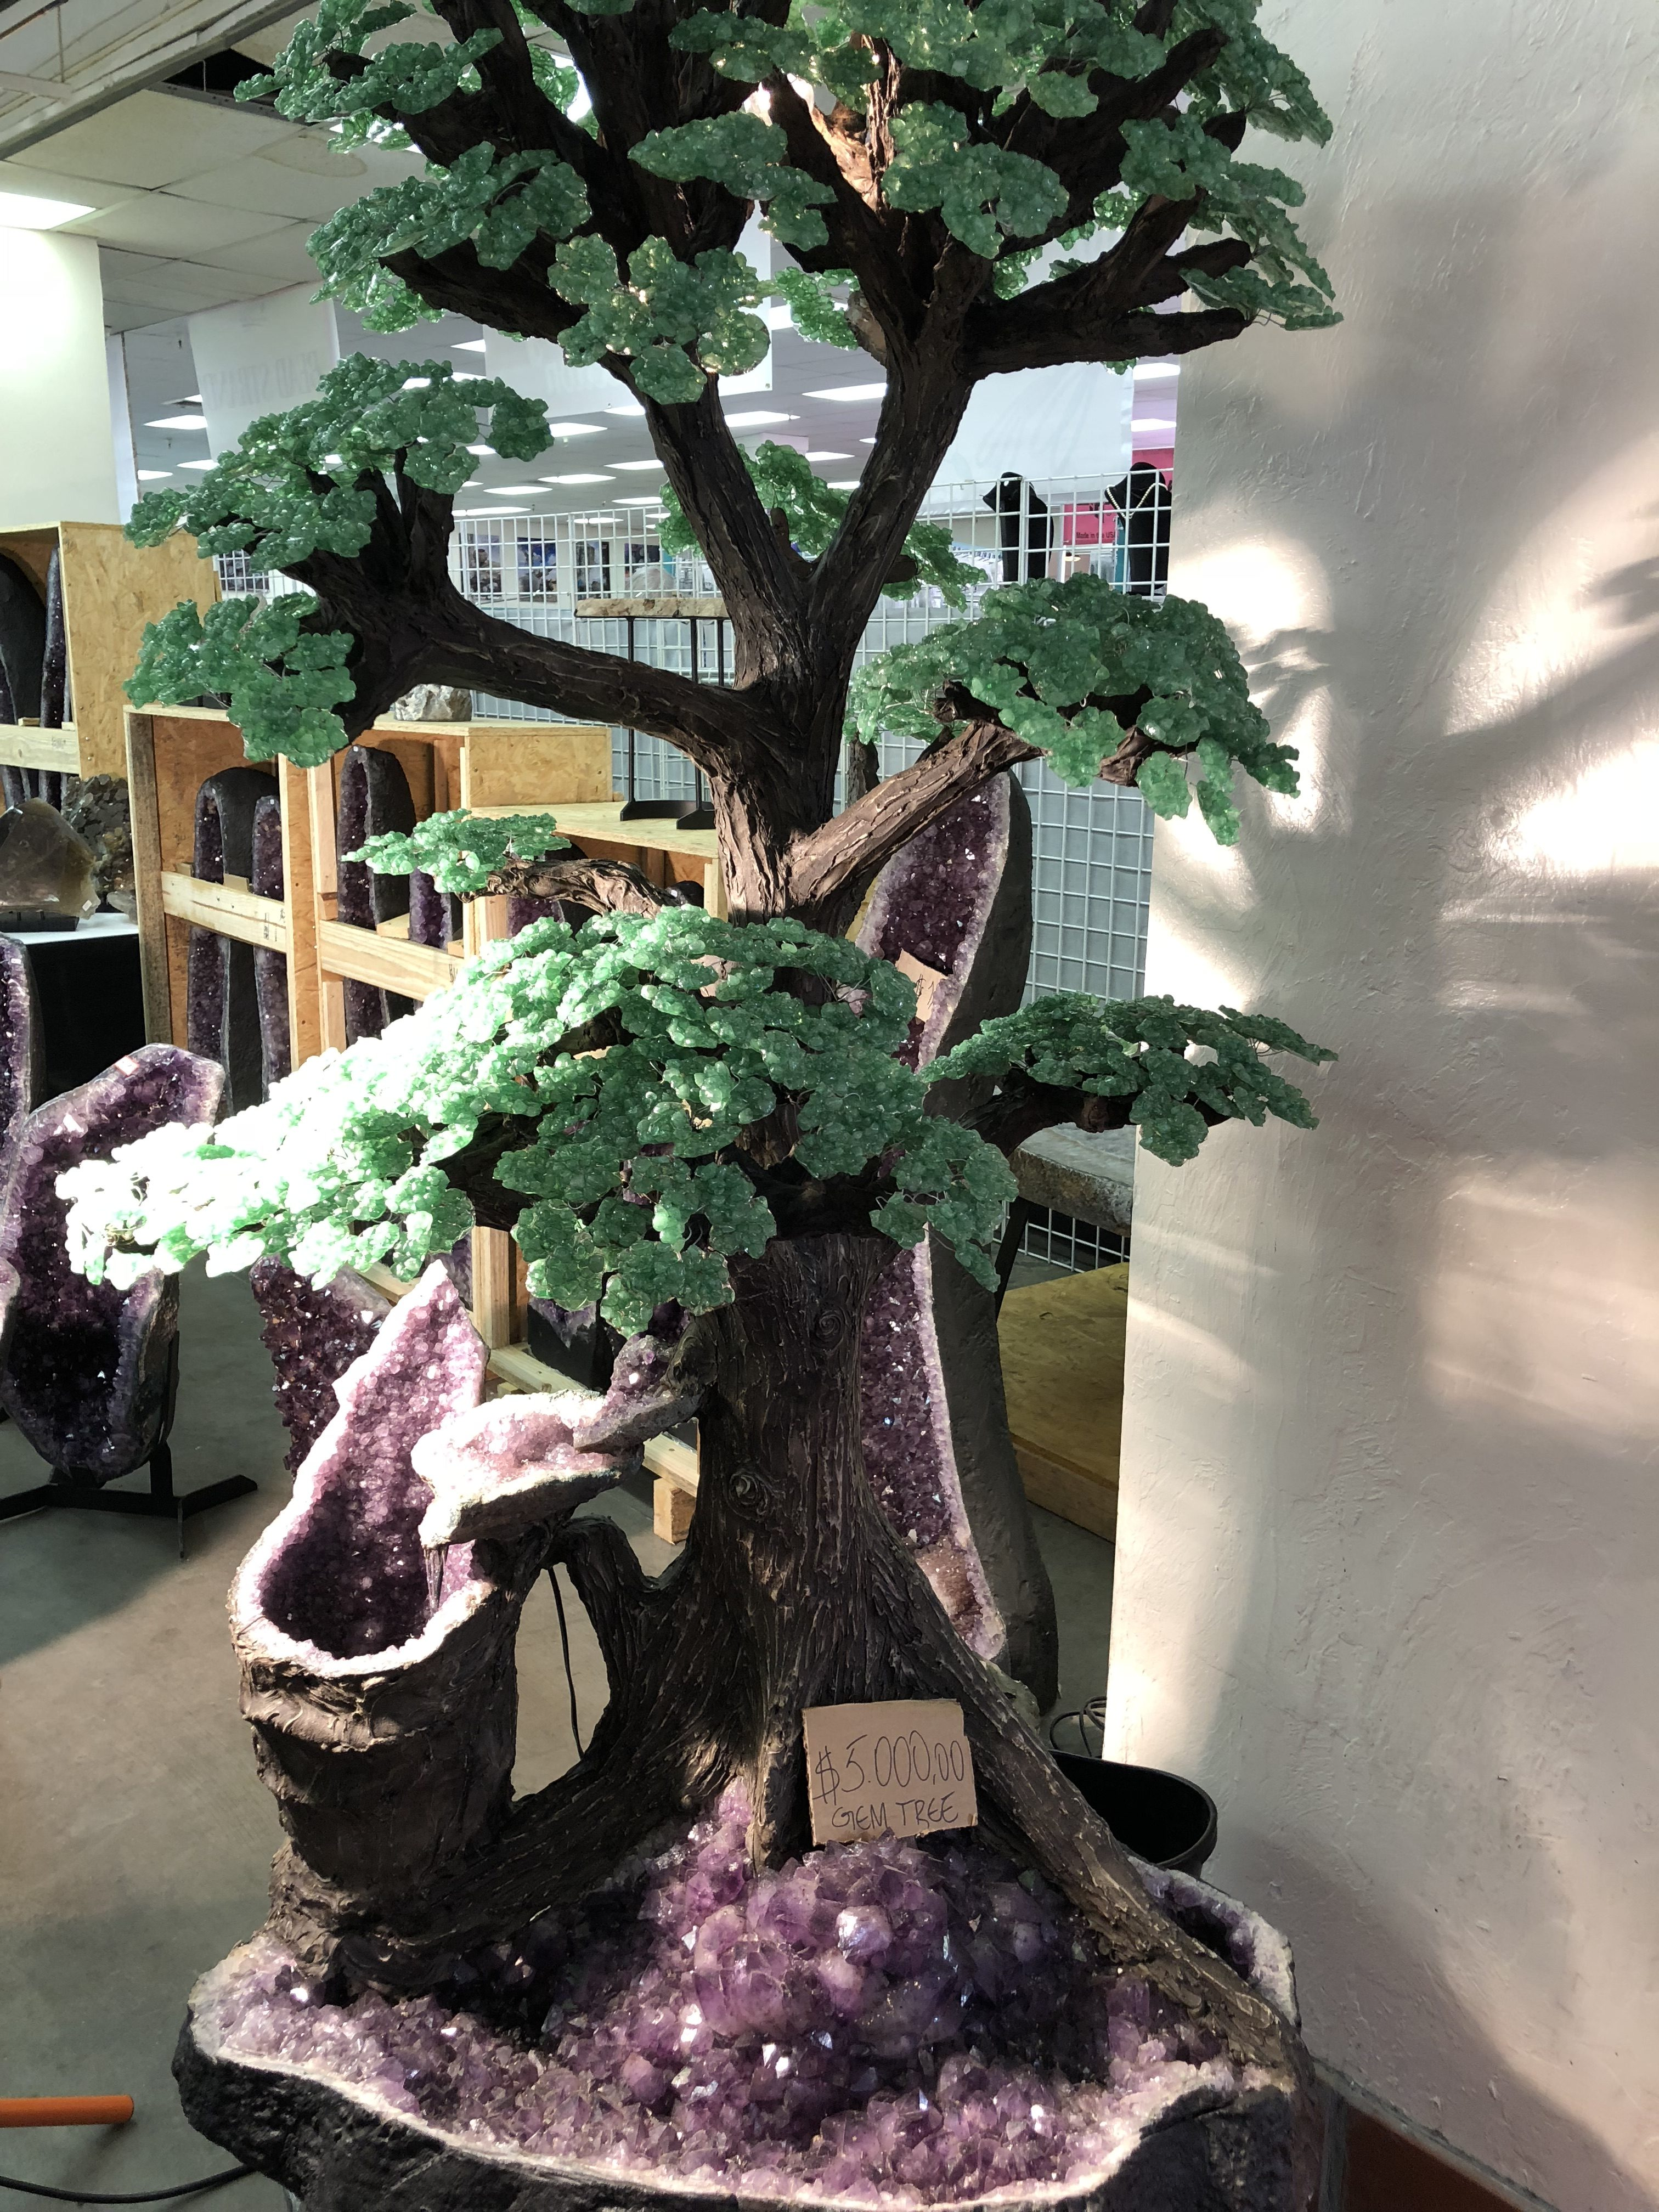 Life-size gemstone tree